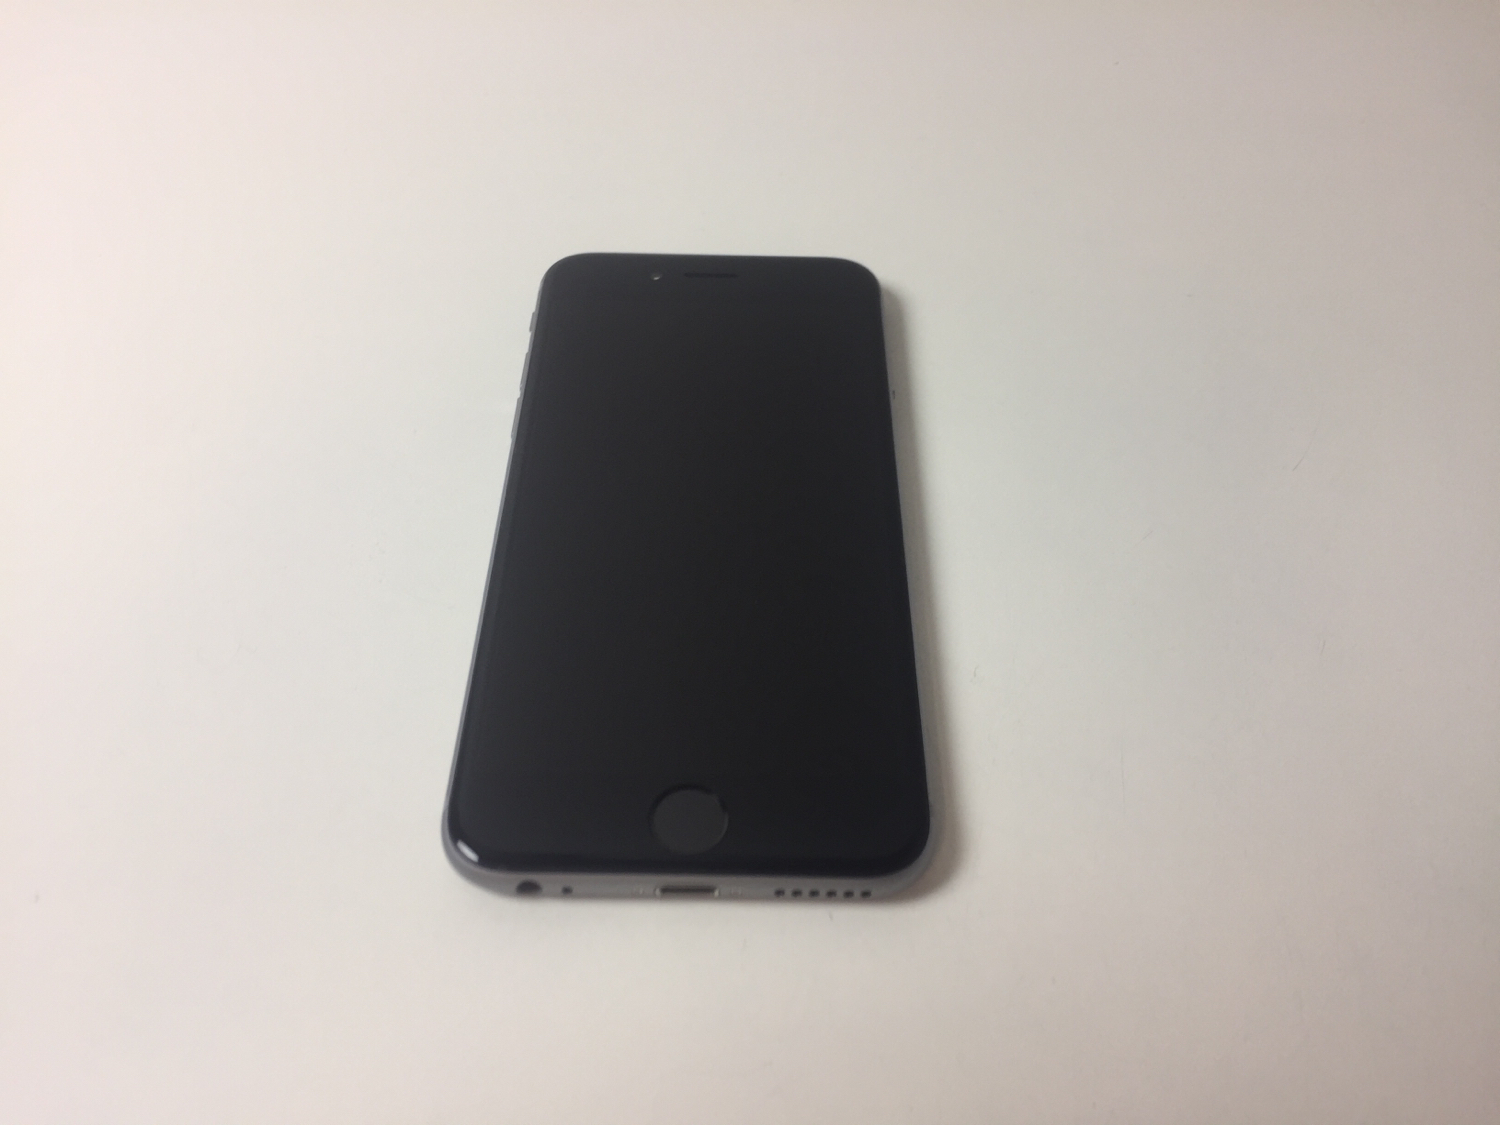 iPhone 6 16GB, 16 GB, Grey, Kuva 1